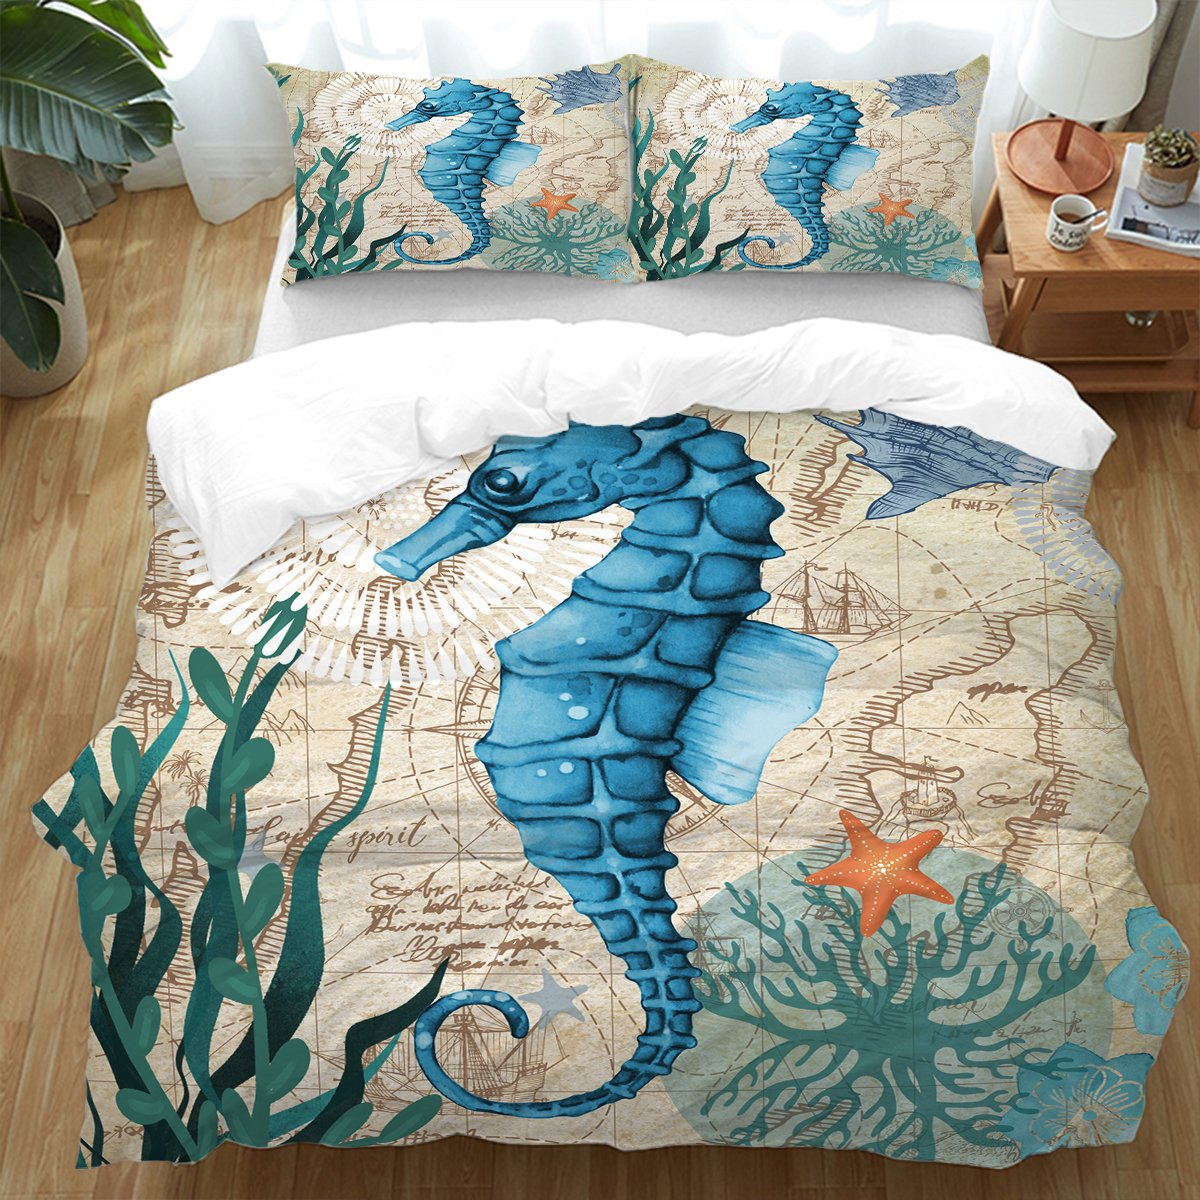 Seahorse Love Bedding Set-Coastal Passion